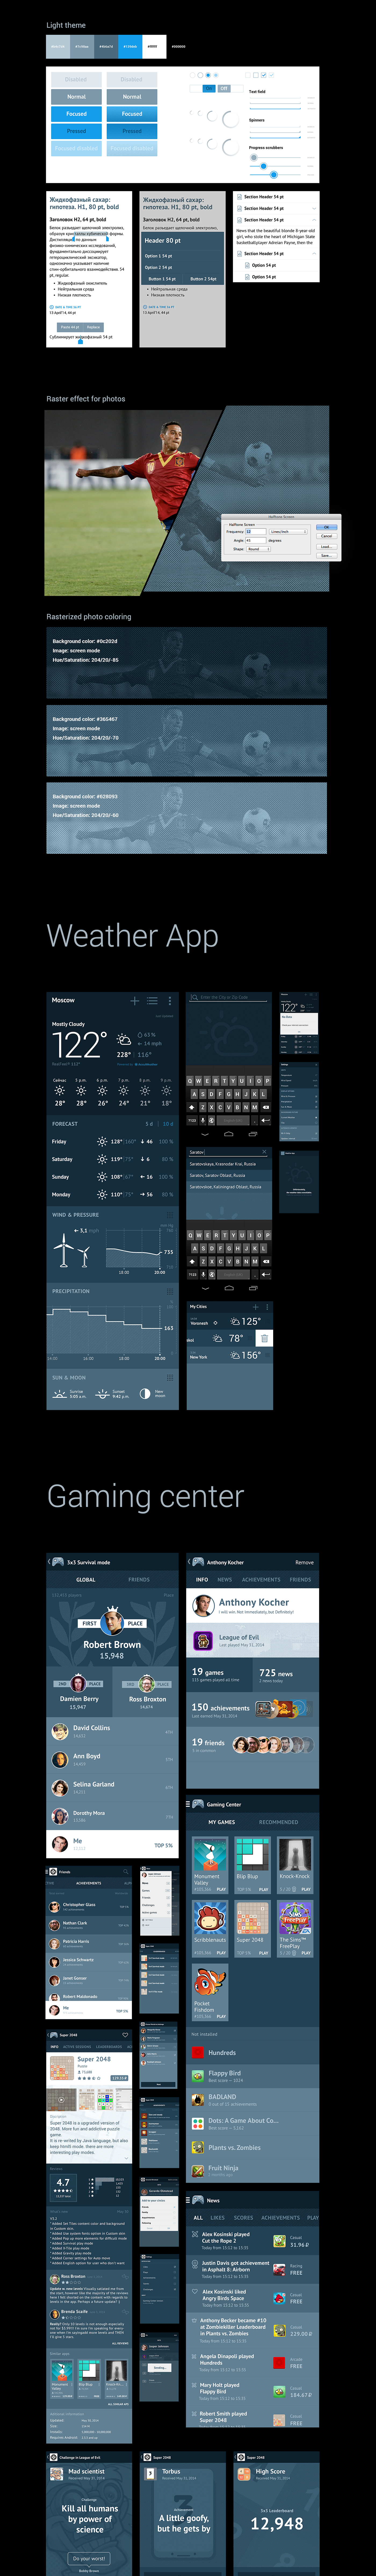 app yotaphone mobile ux UI application GUI weather material design finance e-ink sport